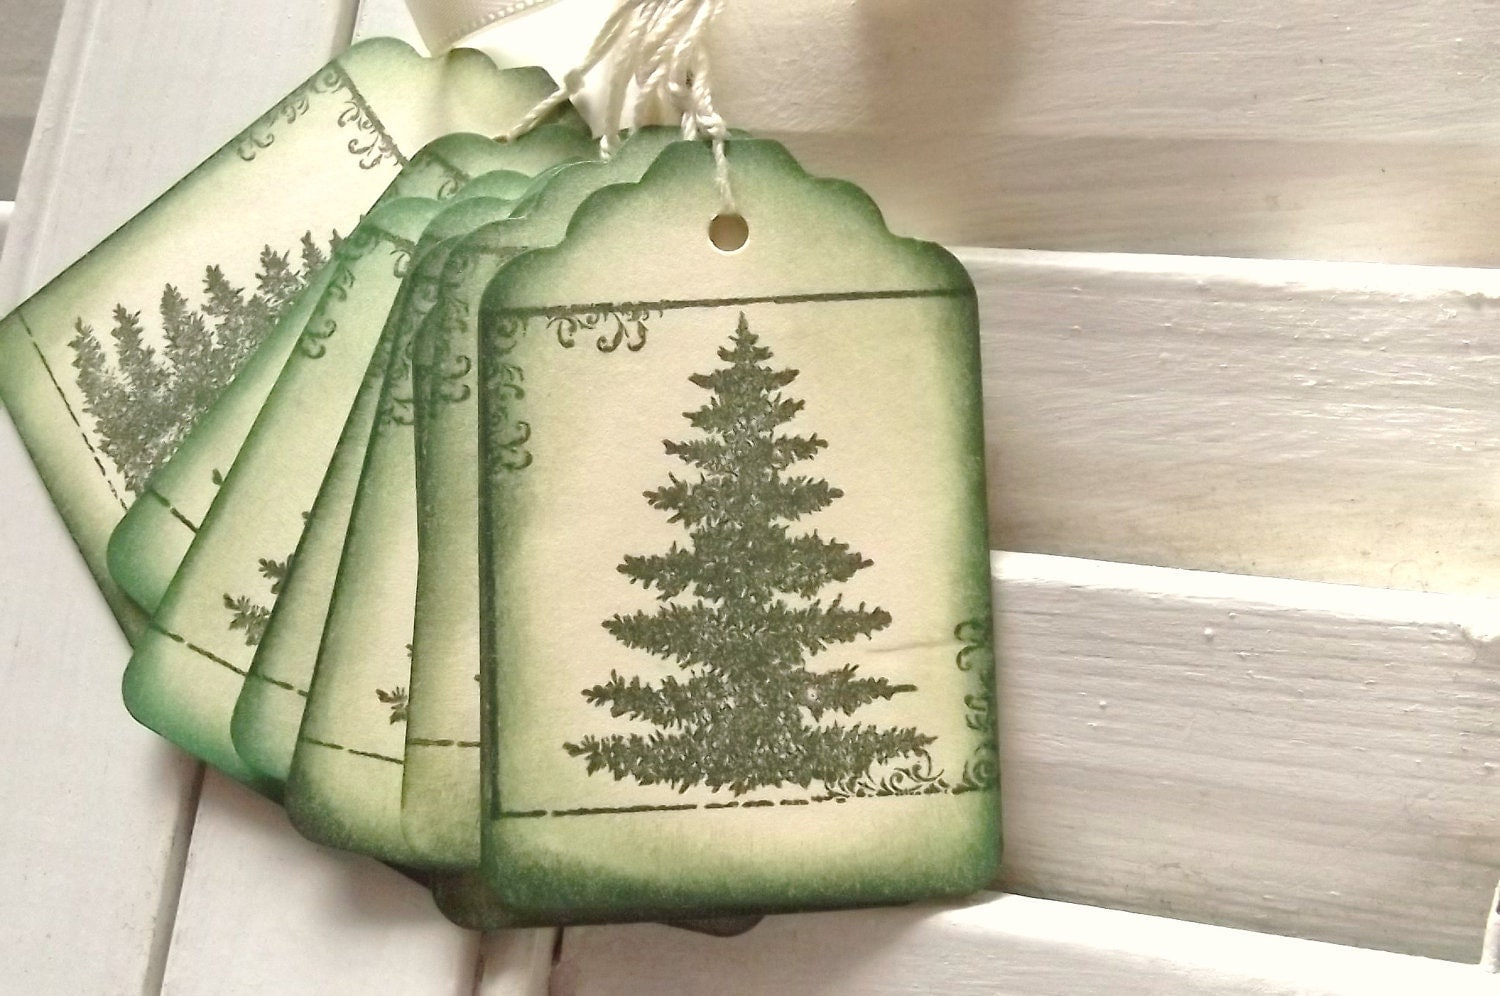 Pine Tree Tags - Nature, Scrolls, Elegant, Green and Cream 8 - SweetlyScrappedArt